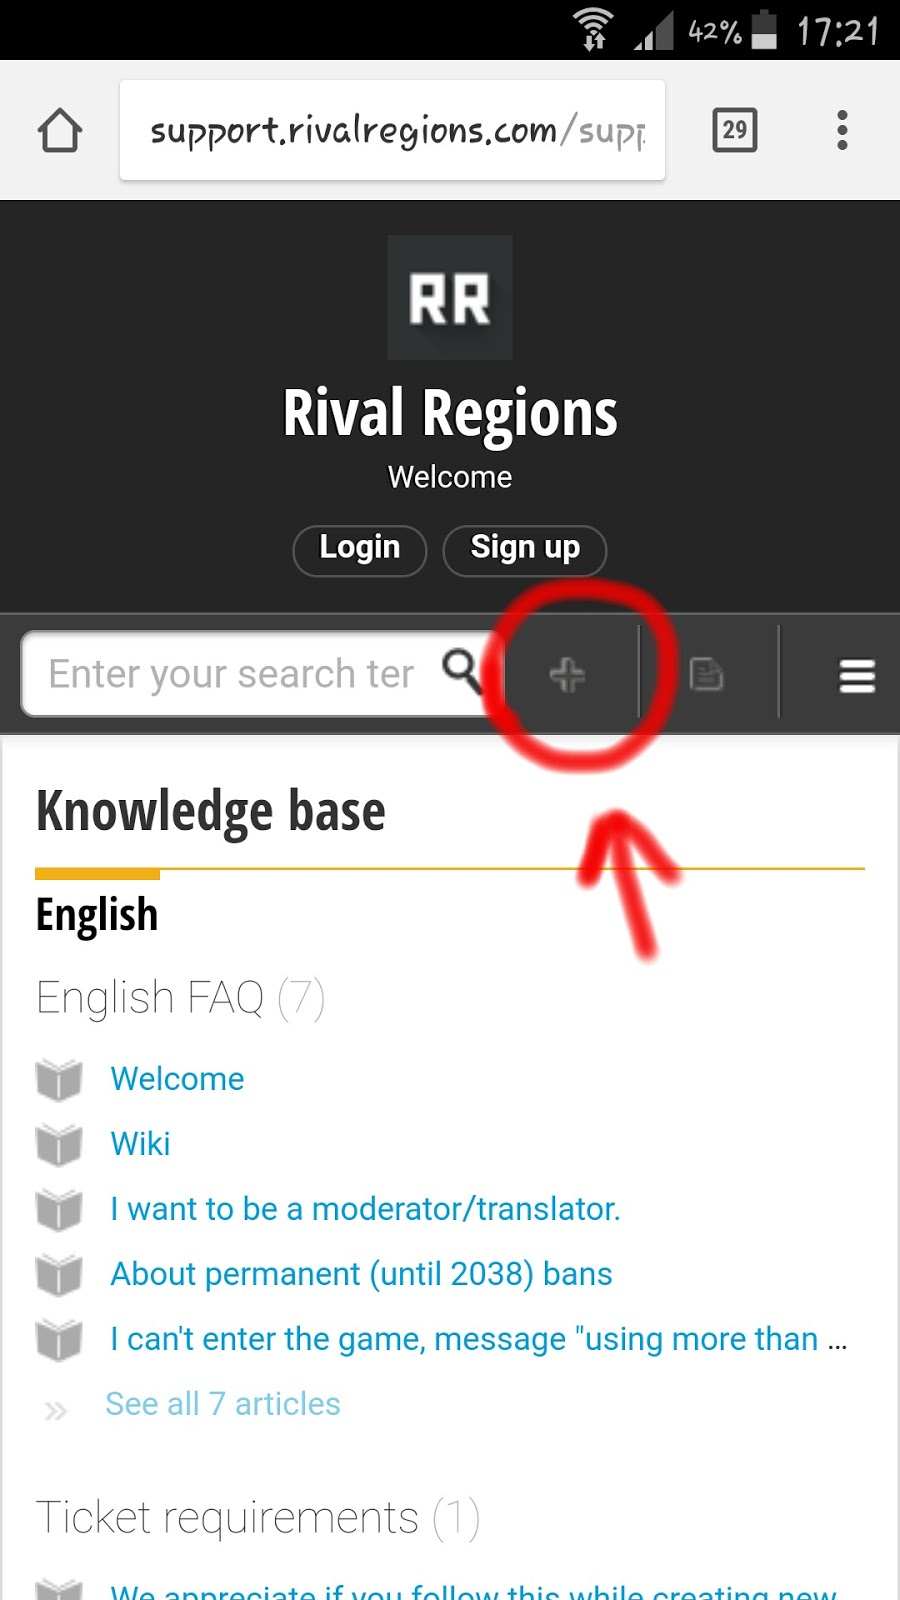 Rival Regions support homepage